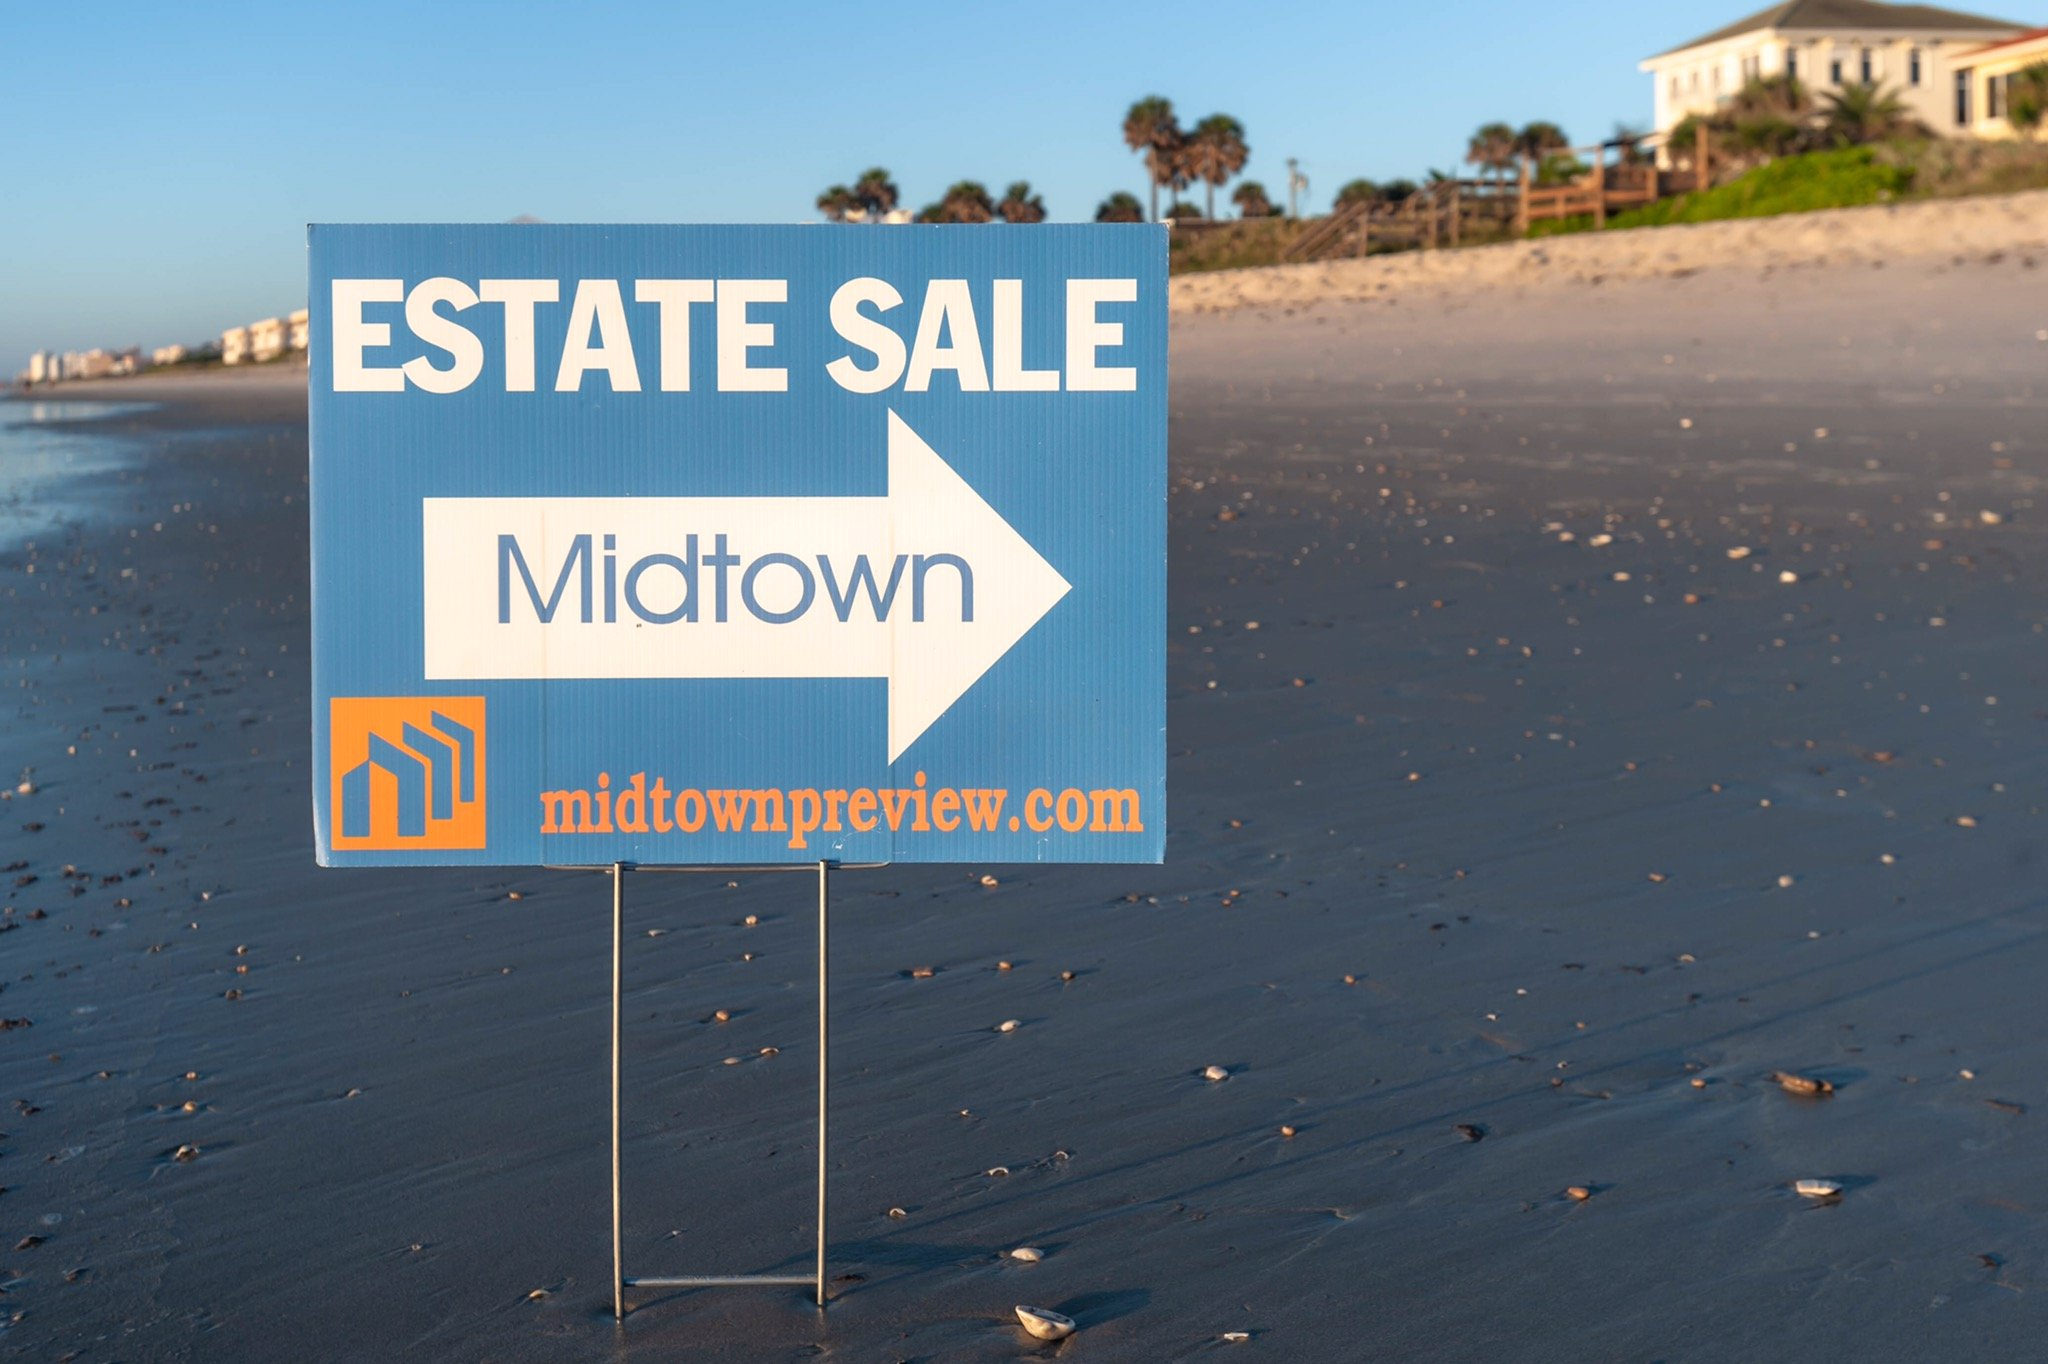 A Midtown Estate Sale street sign placed in the golden sands of a Melbourne Florida beach